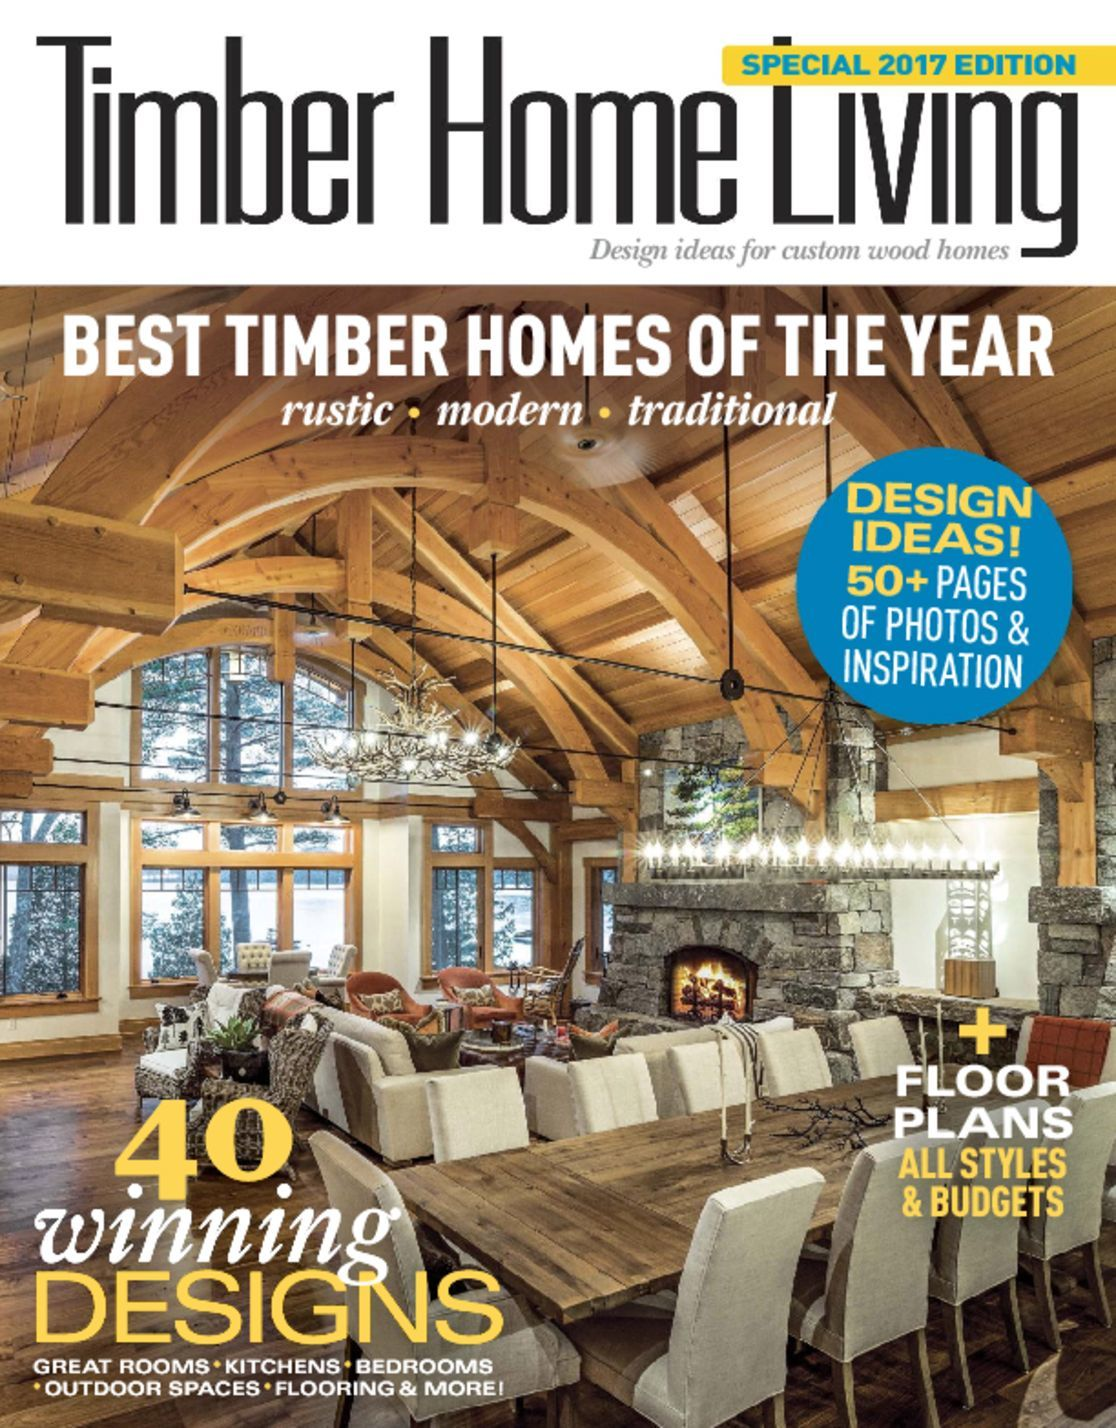 Timber home living magazine ideas for custom wood homes for Home living magazines